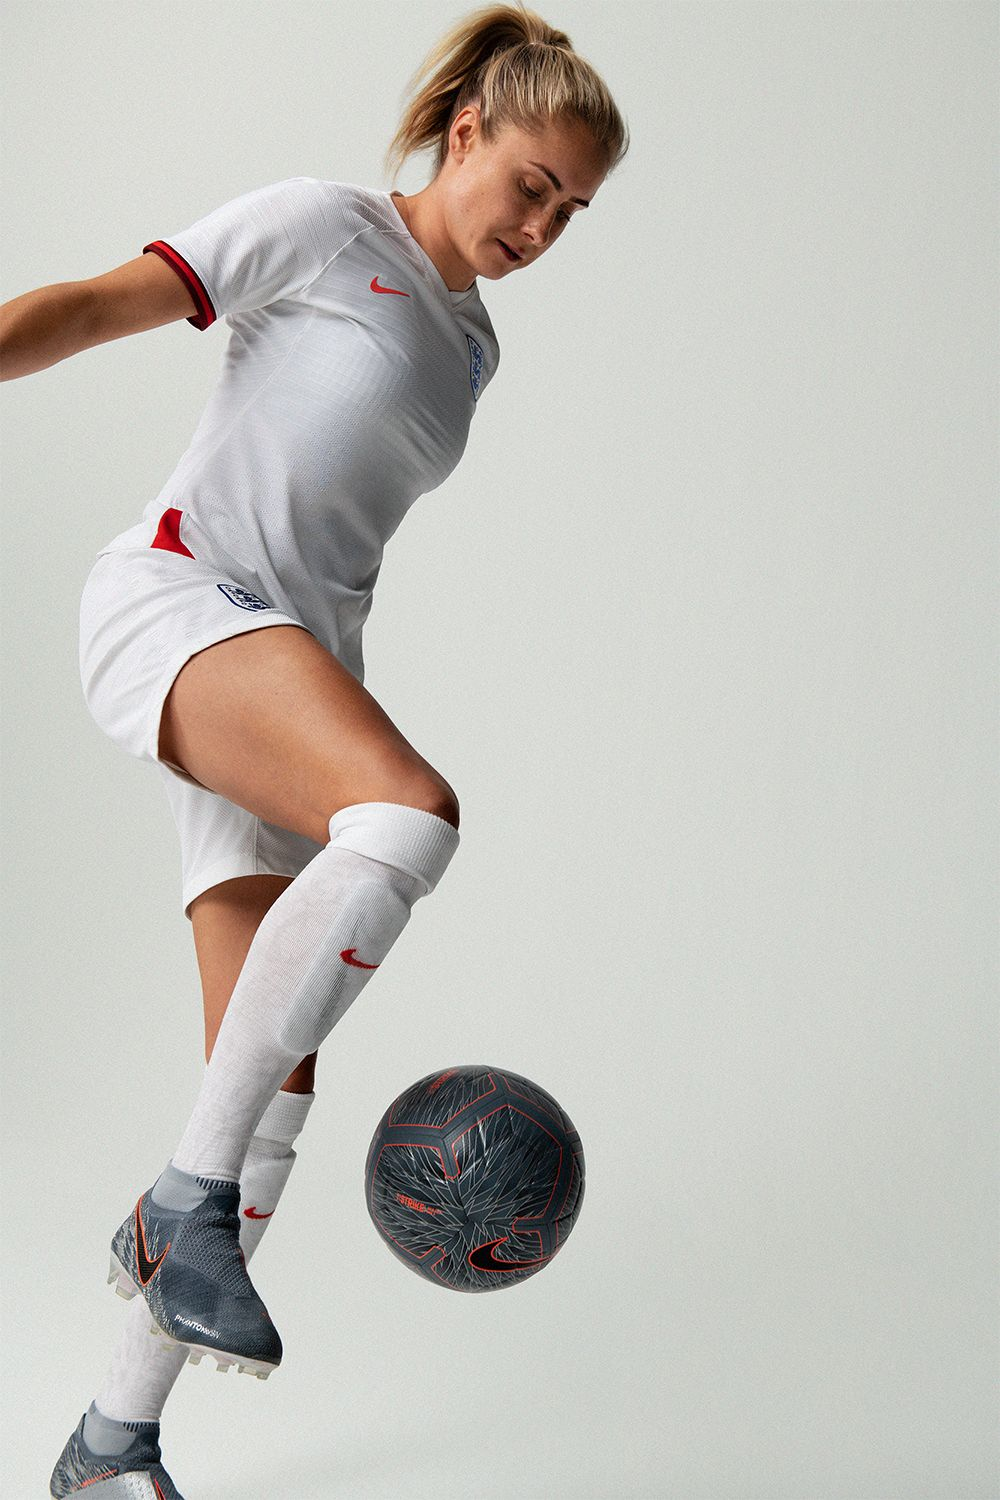 Accented By Dark Cuffs The New 2019 England Home Jersey Is A Fresh Take On The Tradition In 2020 England Ladies Football Womens Football Women S Soccer Team